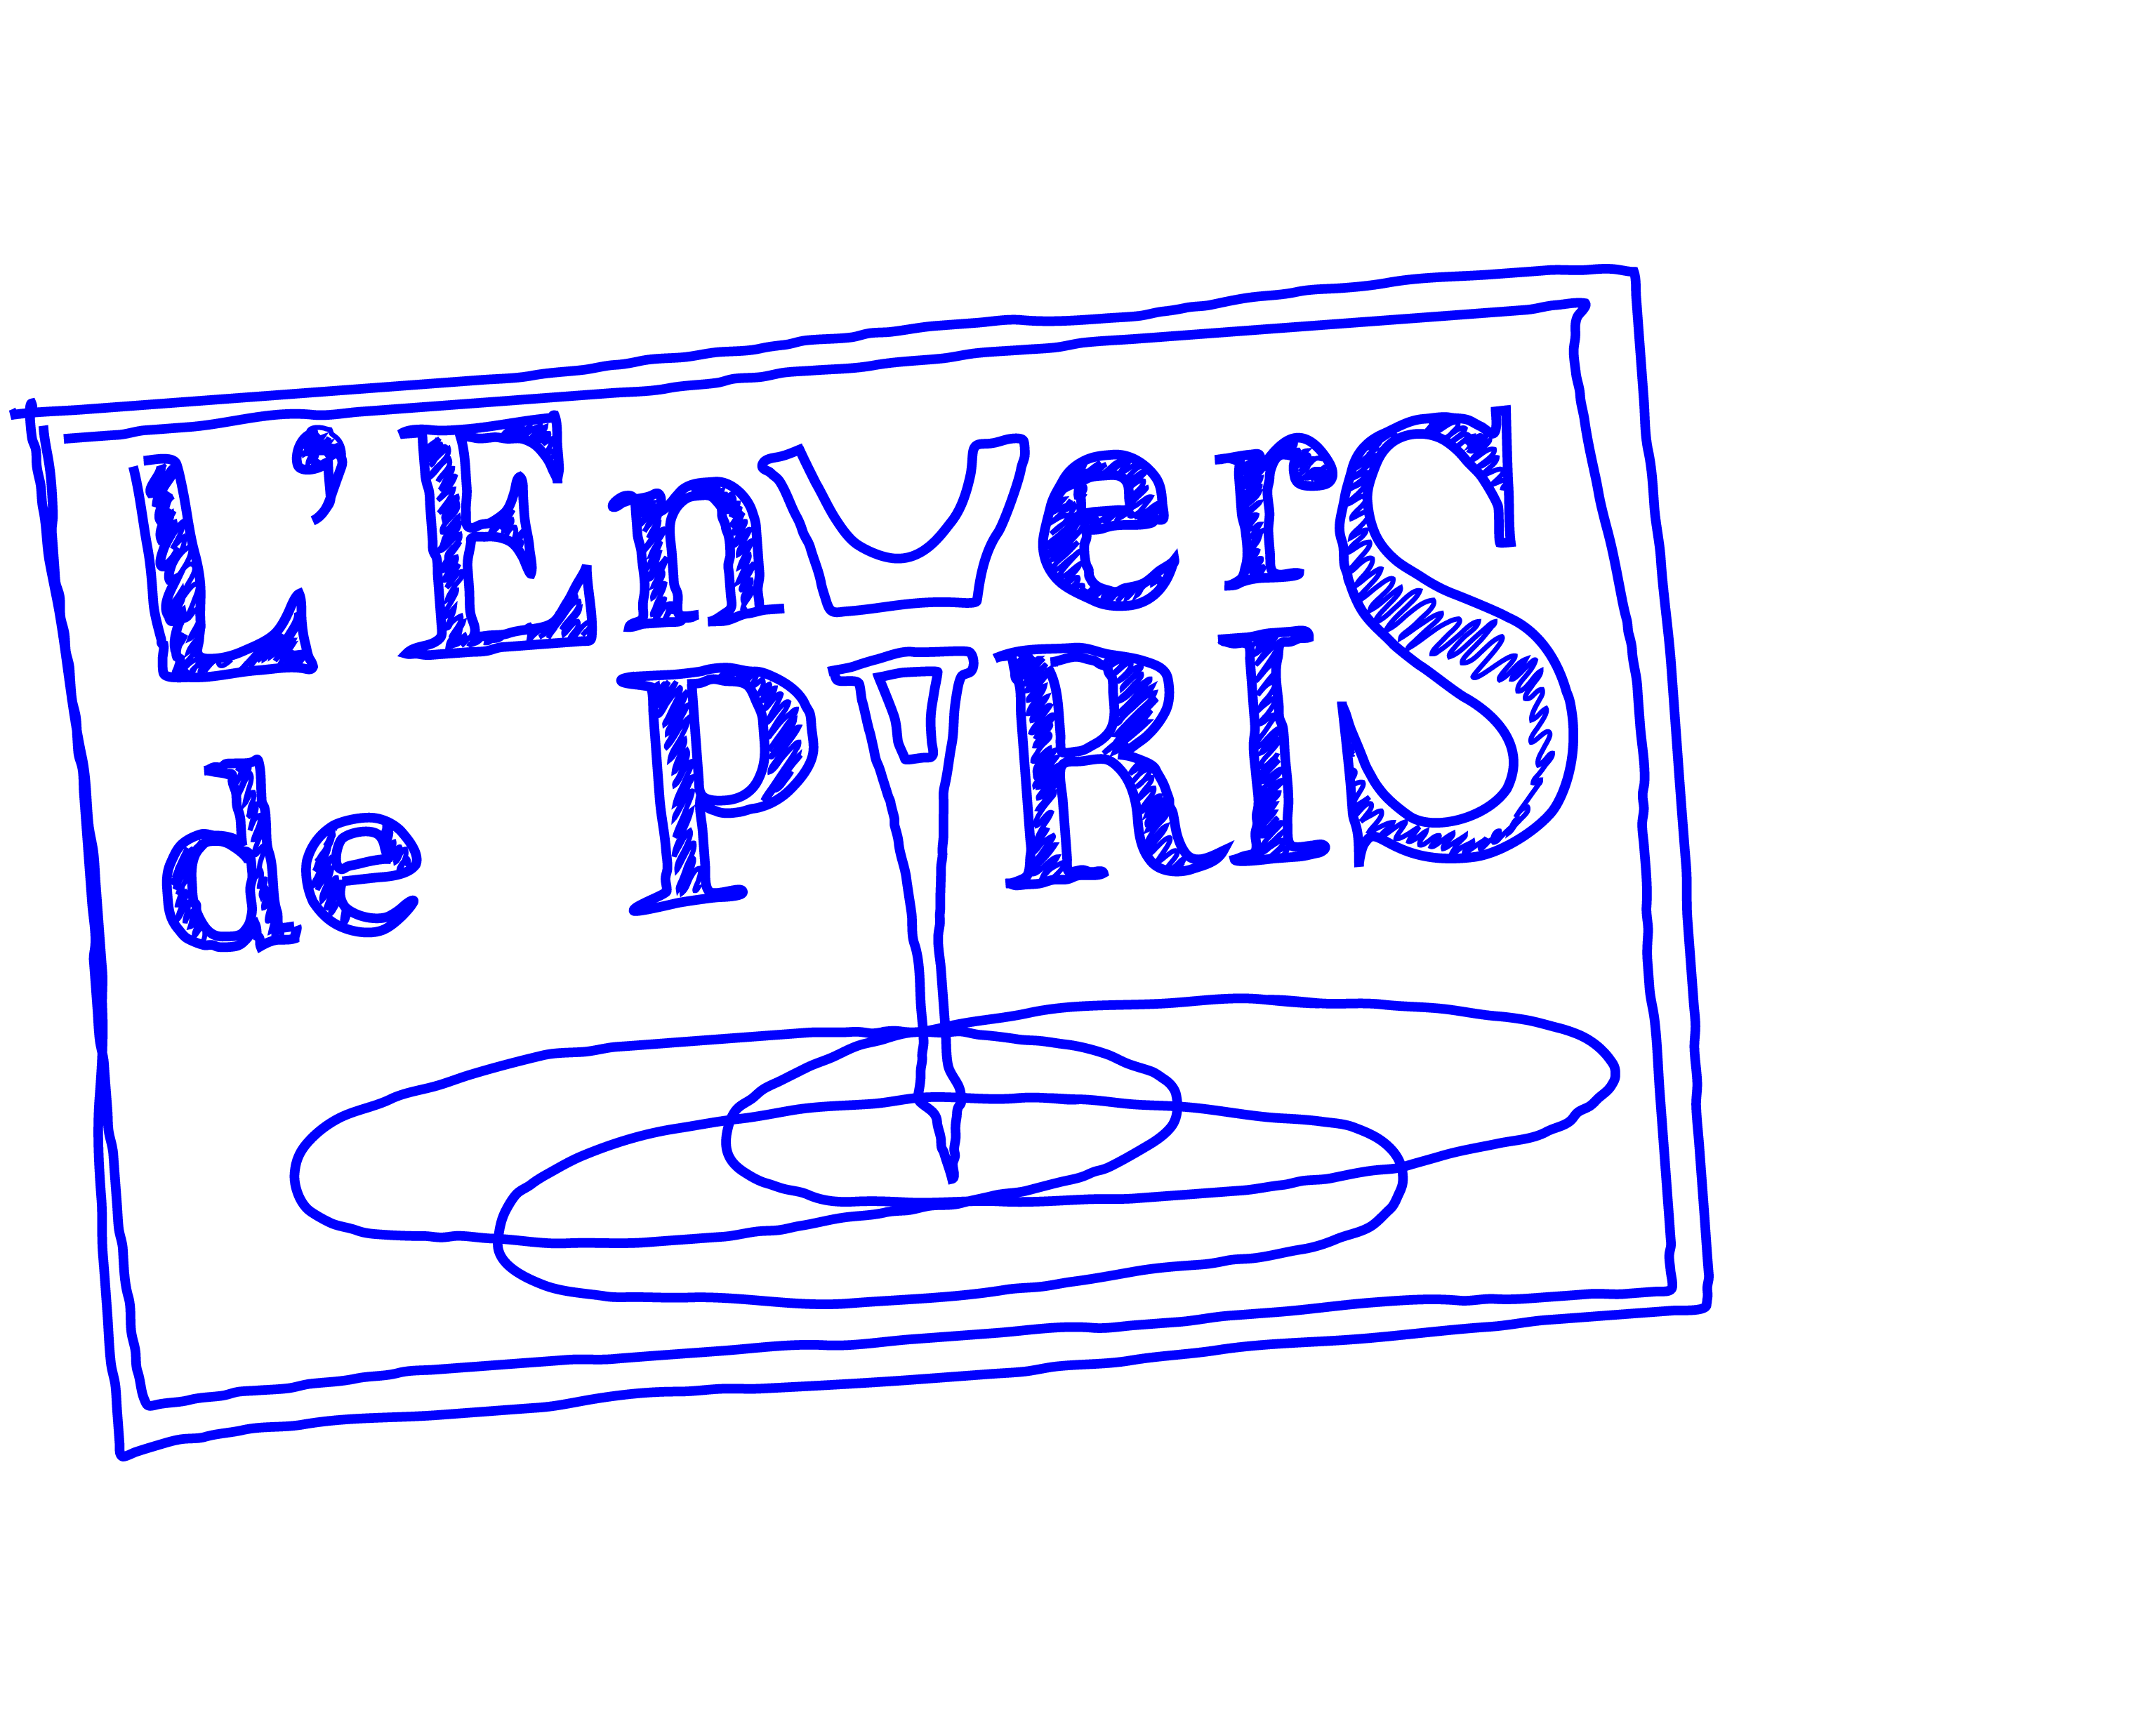 l'Envers de Paris